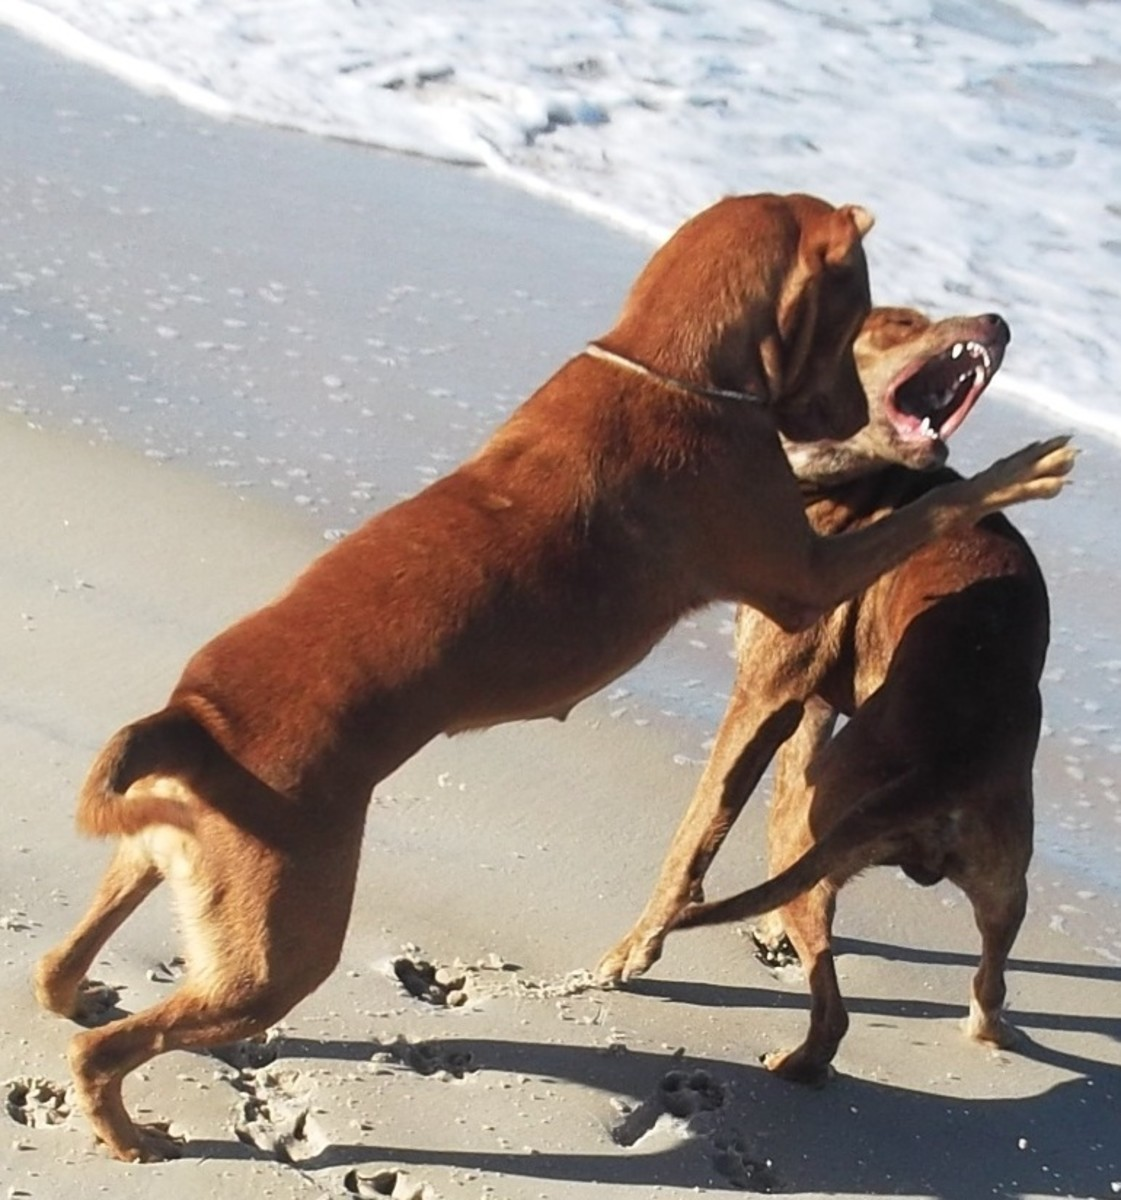 When dogs from the same home use dominant behavior during play, aggression can get out of control.